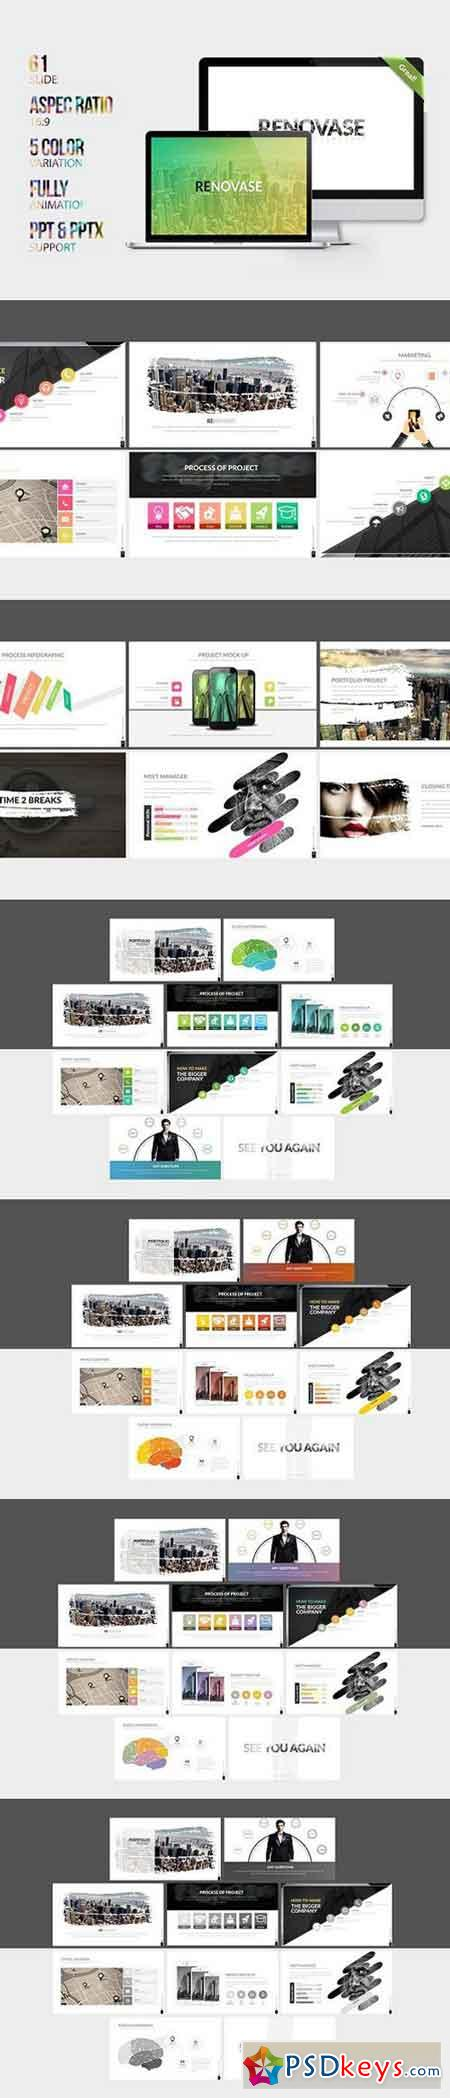 Renovase Powerpoint Template 1544371 » Free Download Photoshop ...